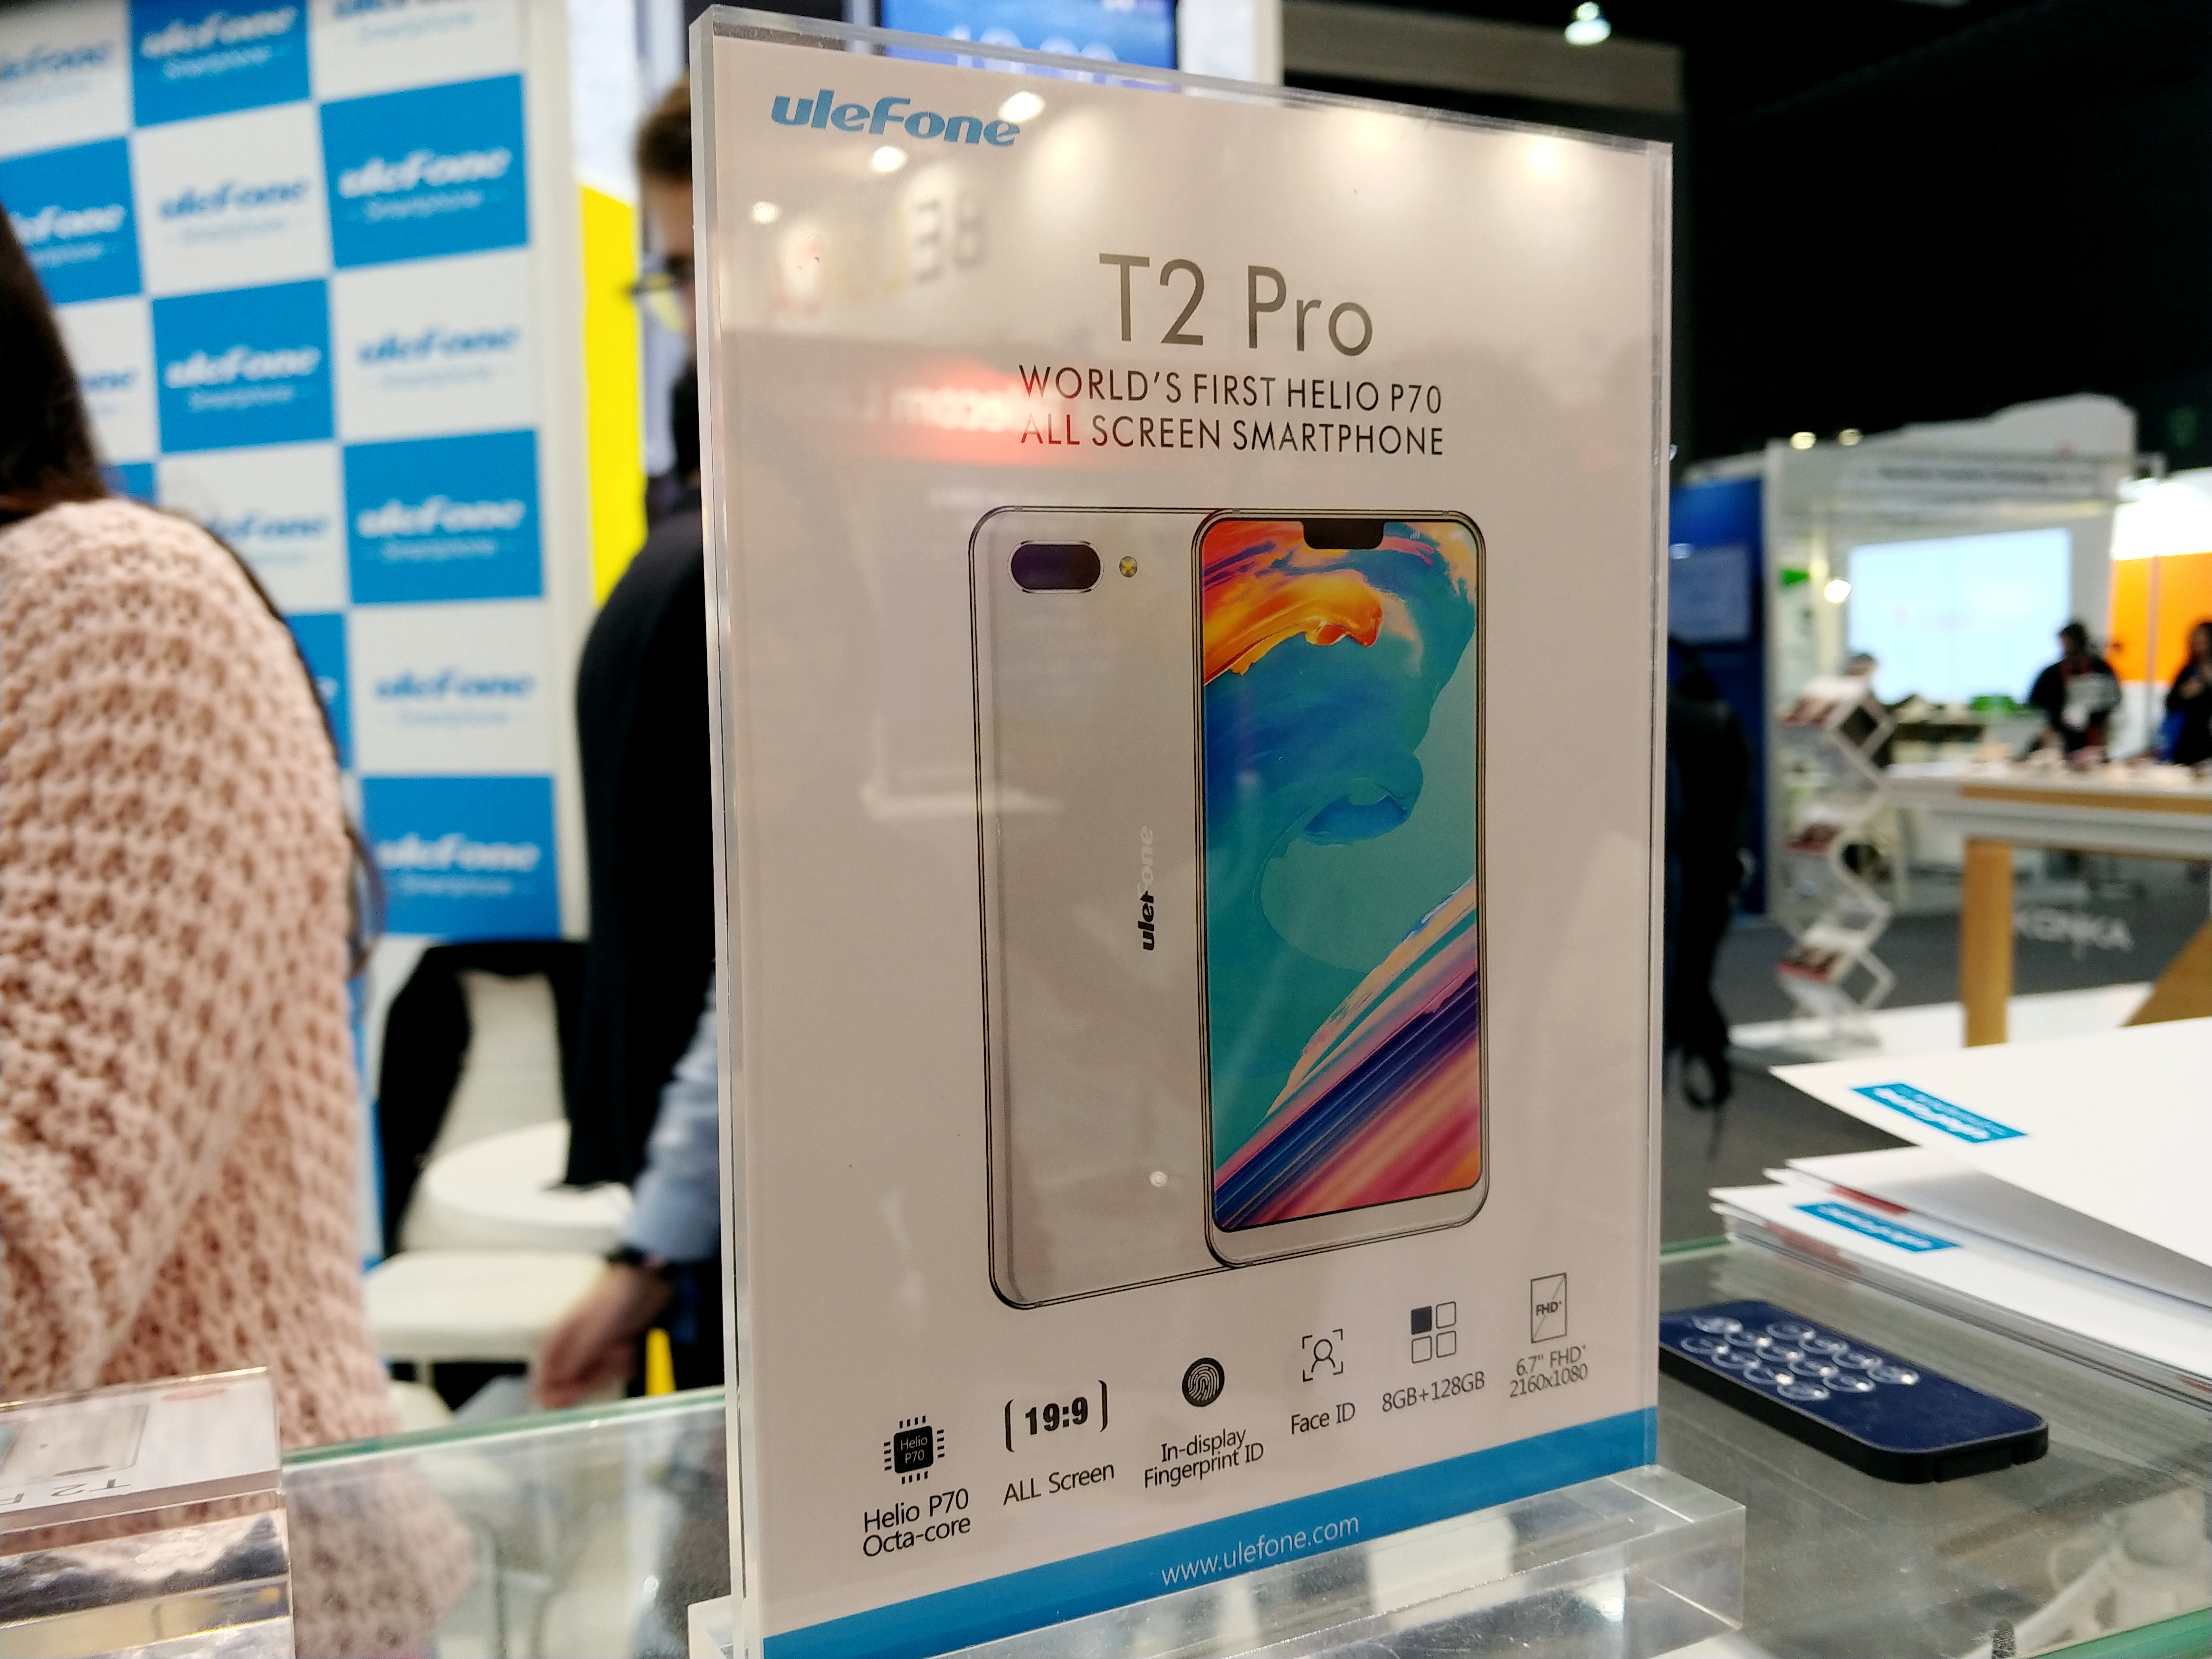 The Ulefone T2 Pro Hands-On: A 6 7-inch Stunner Smartphone